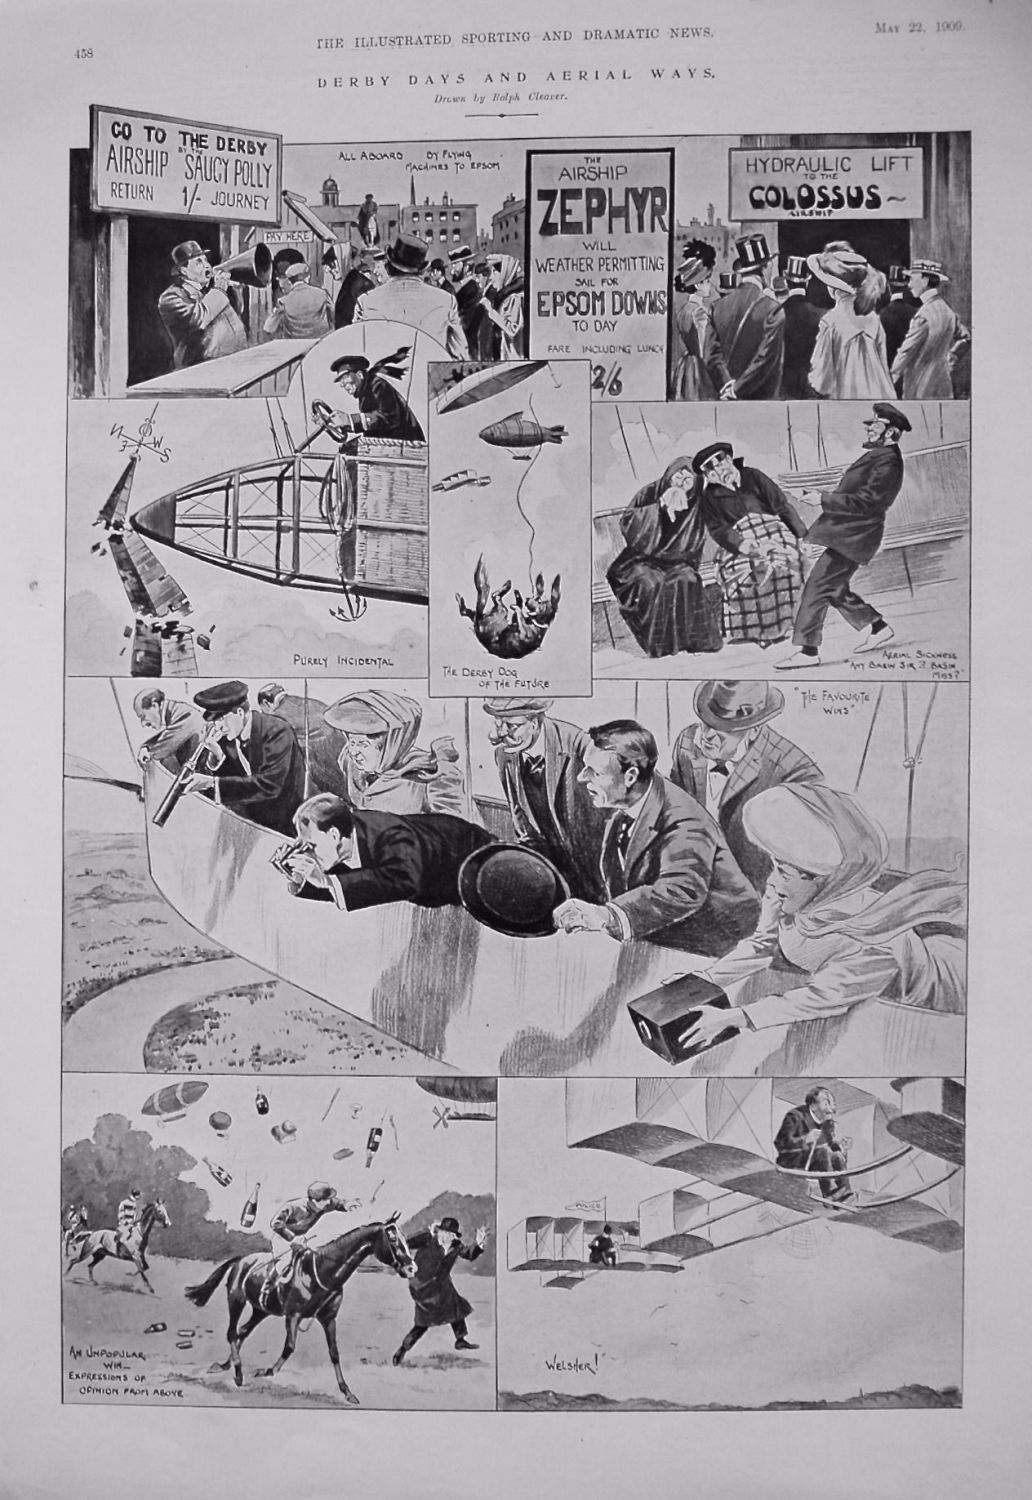 Derby Day and Aerial Ways. 1909